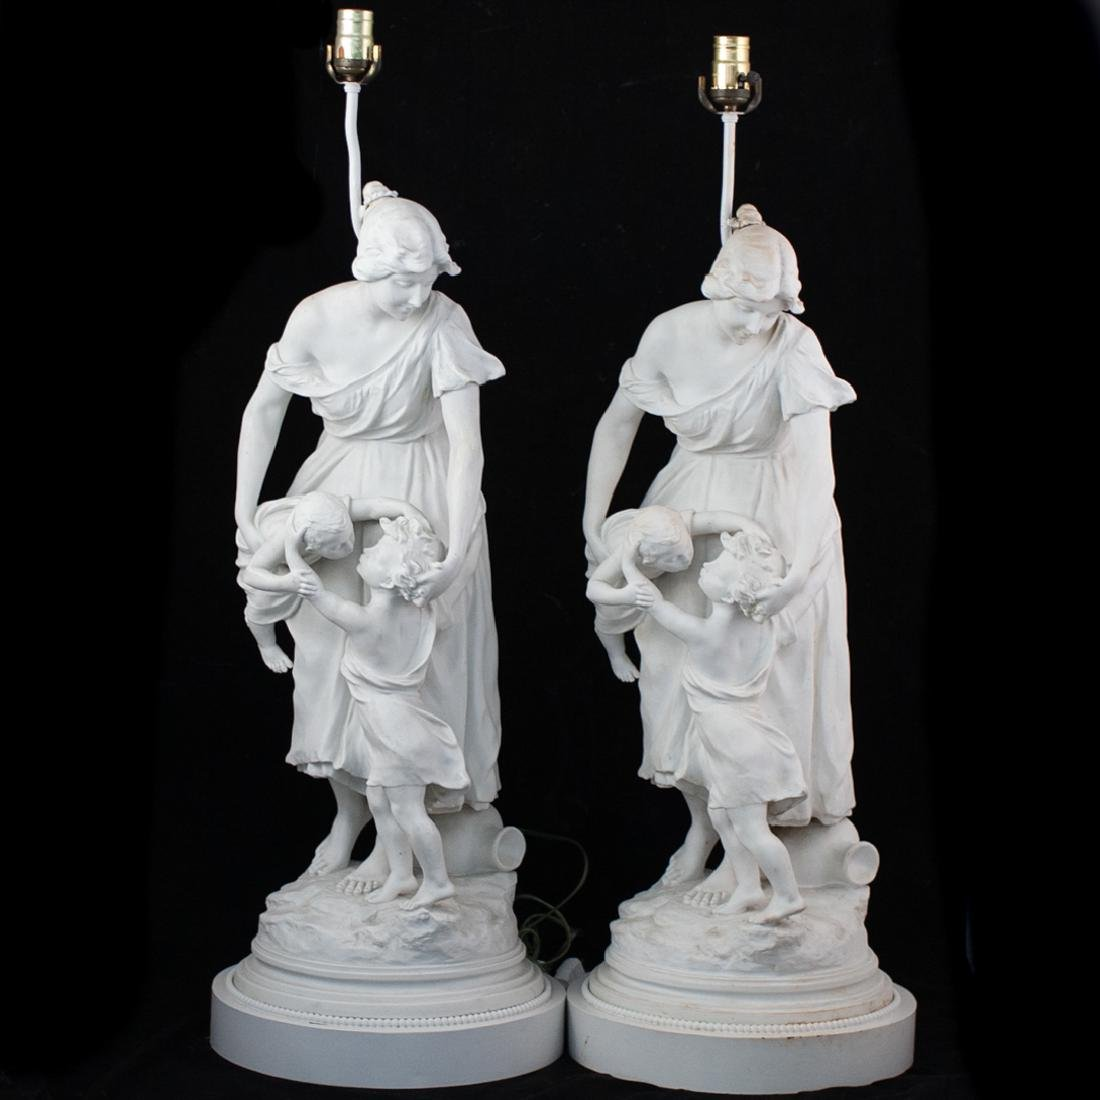 Pair of Luca Madrassi (French. 1848-1919) Porcelain